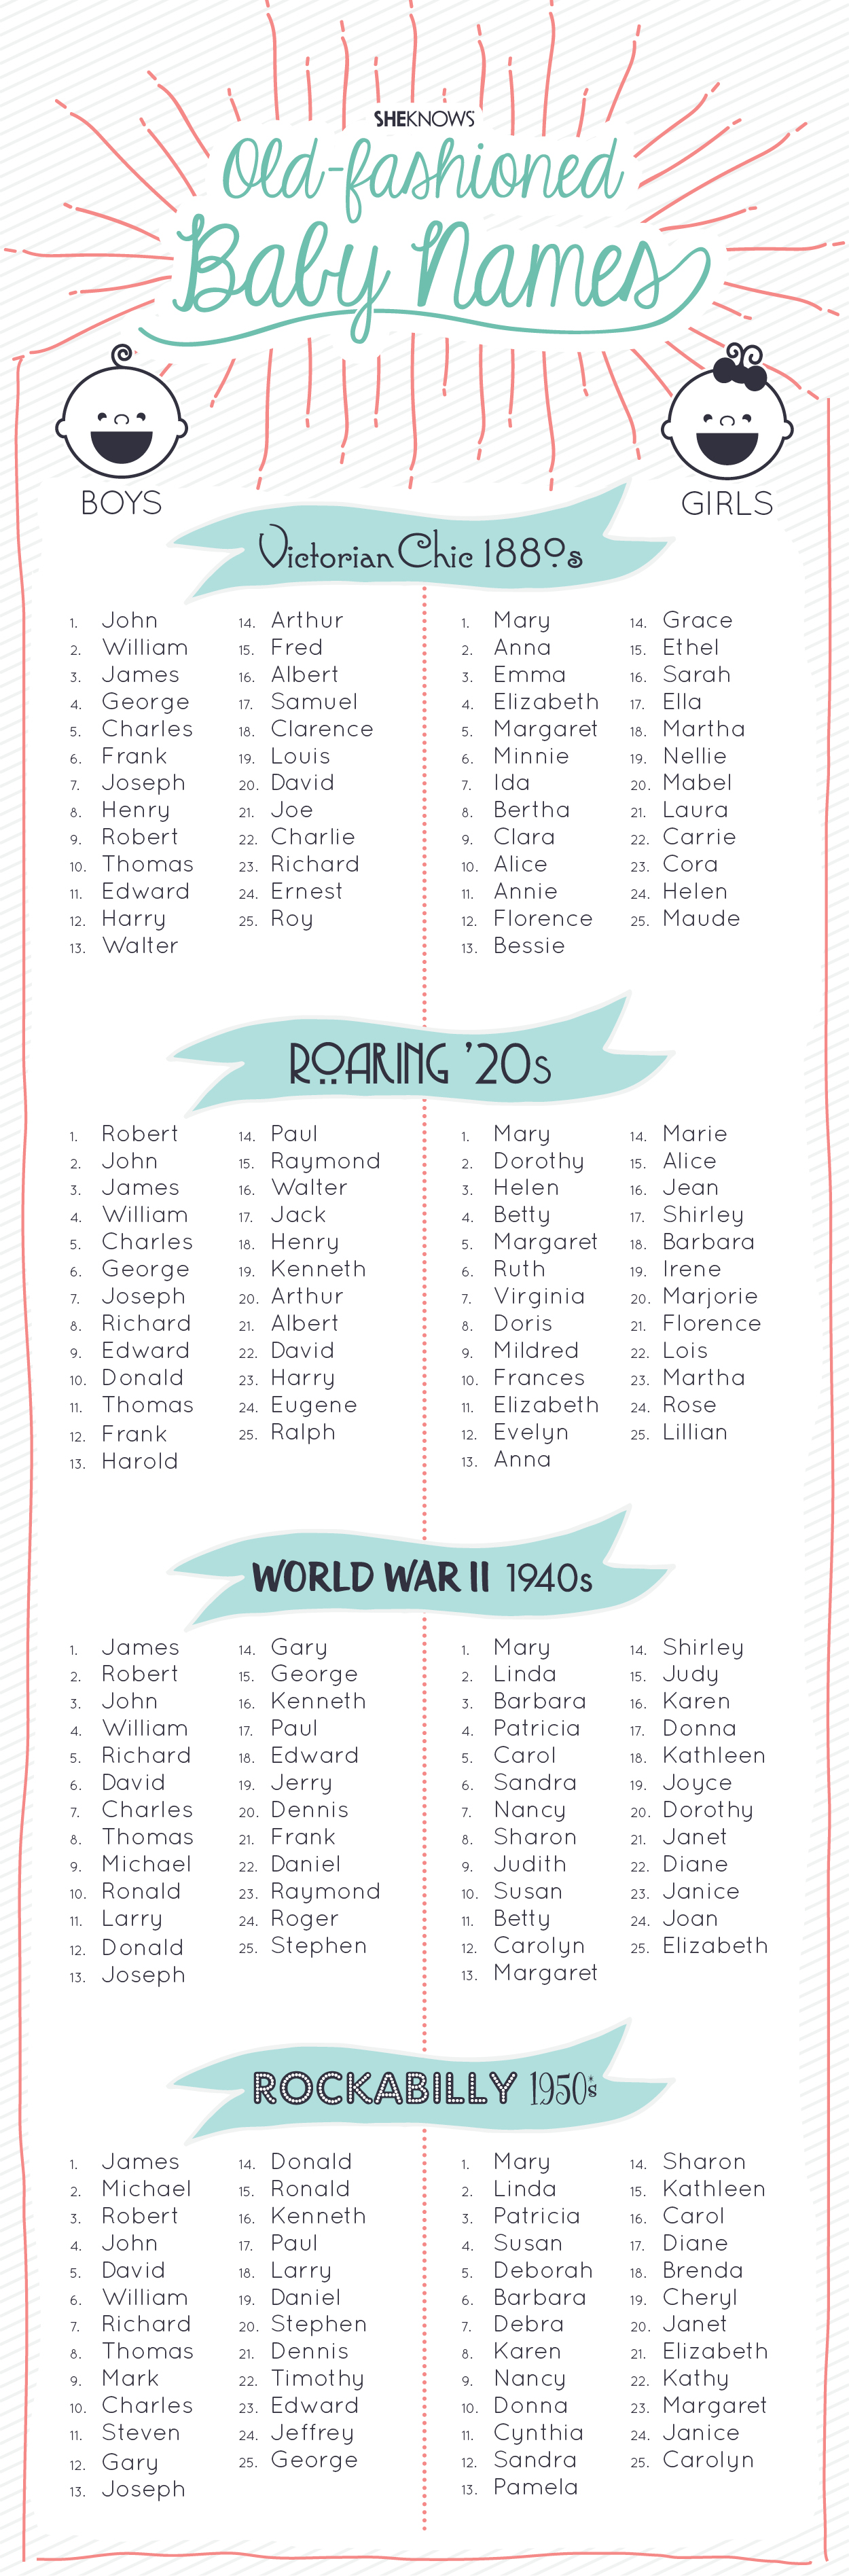 Retro-Cool, Hipster, Vintage Baby Names for Boys WeHaveKids 55